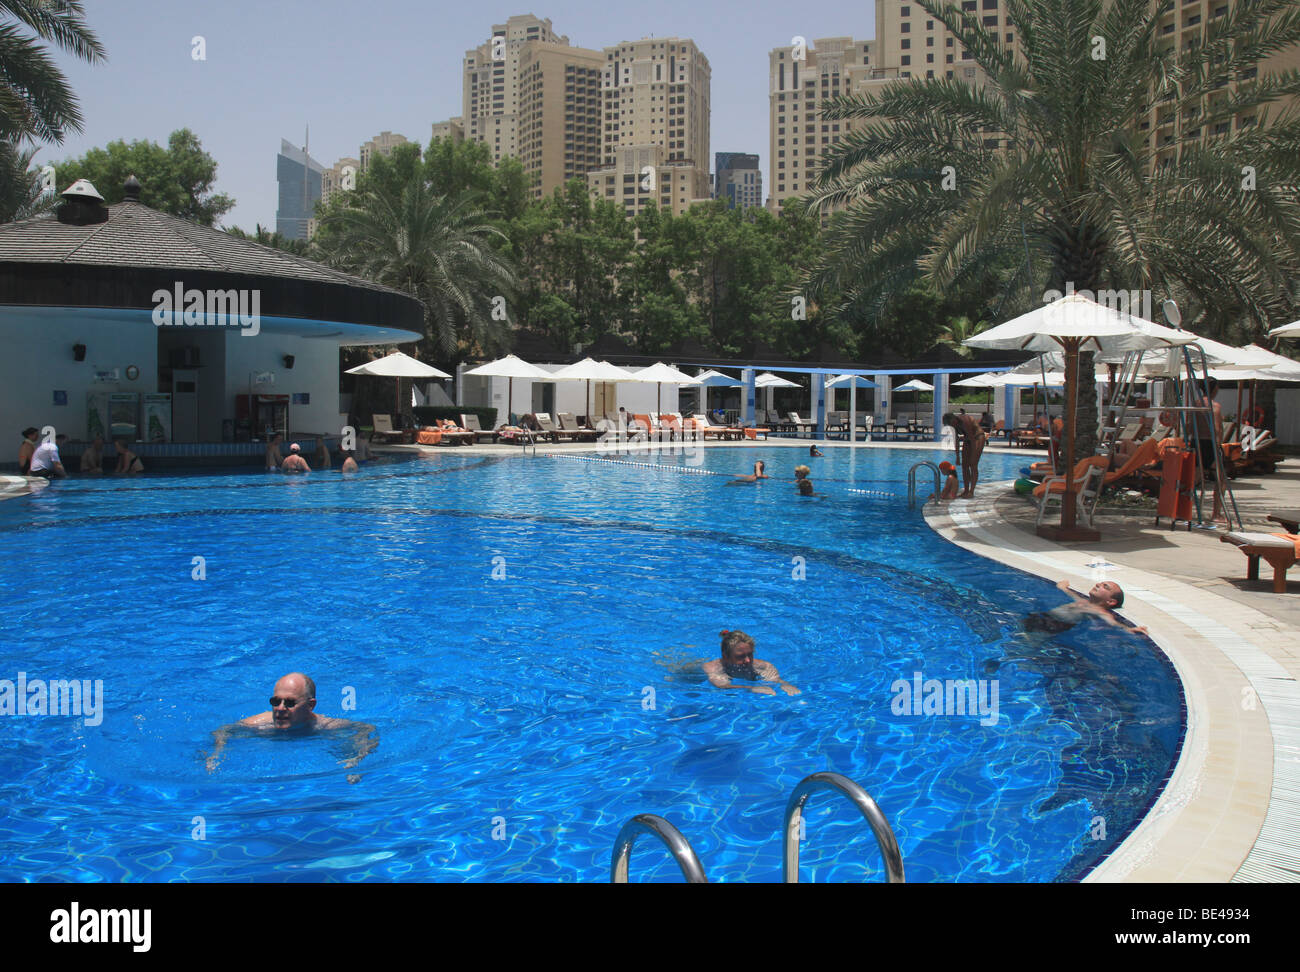 People swimming in the pool at the sheraton hotel on for Pool safety dubai